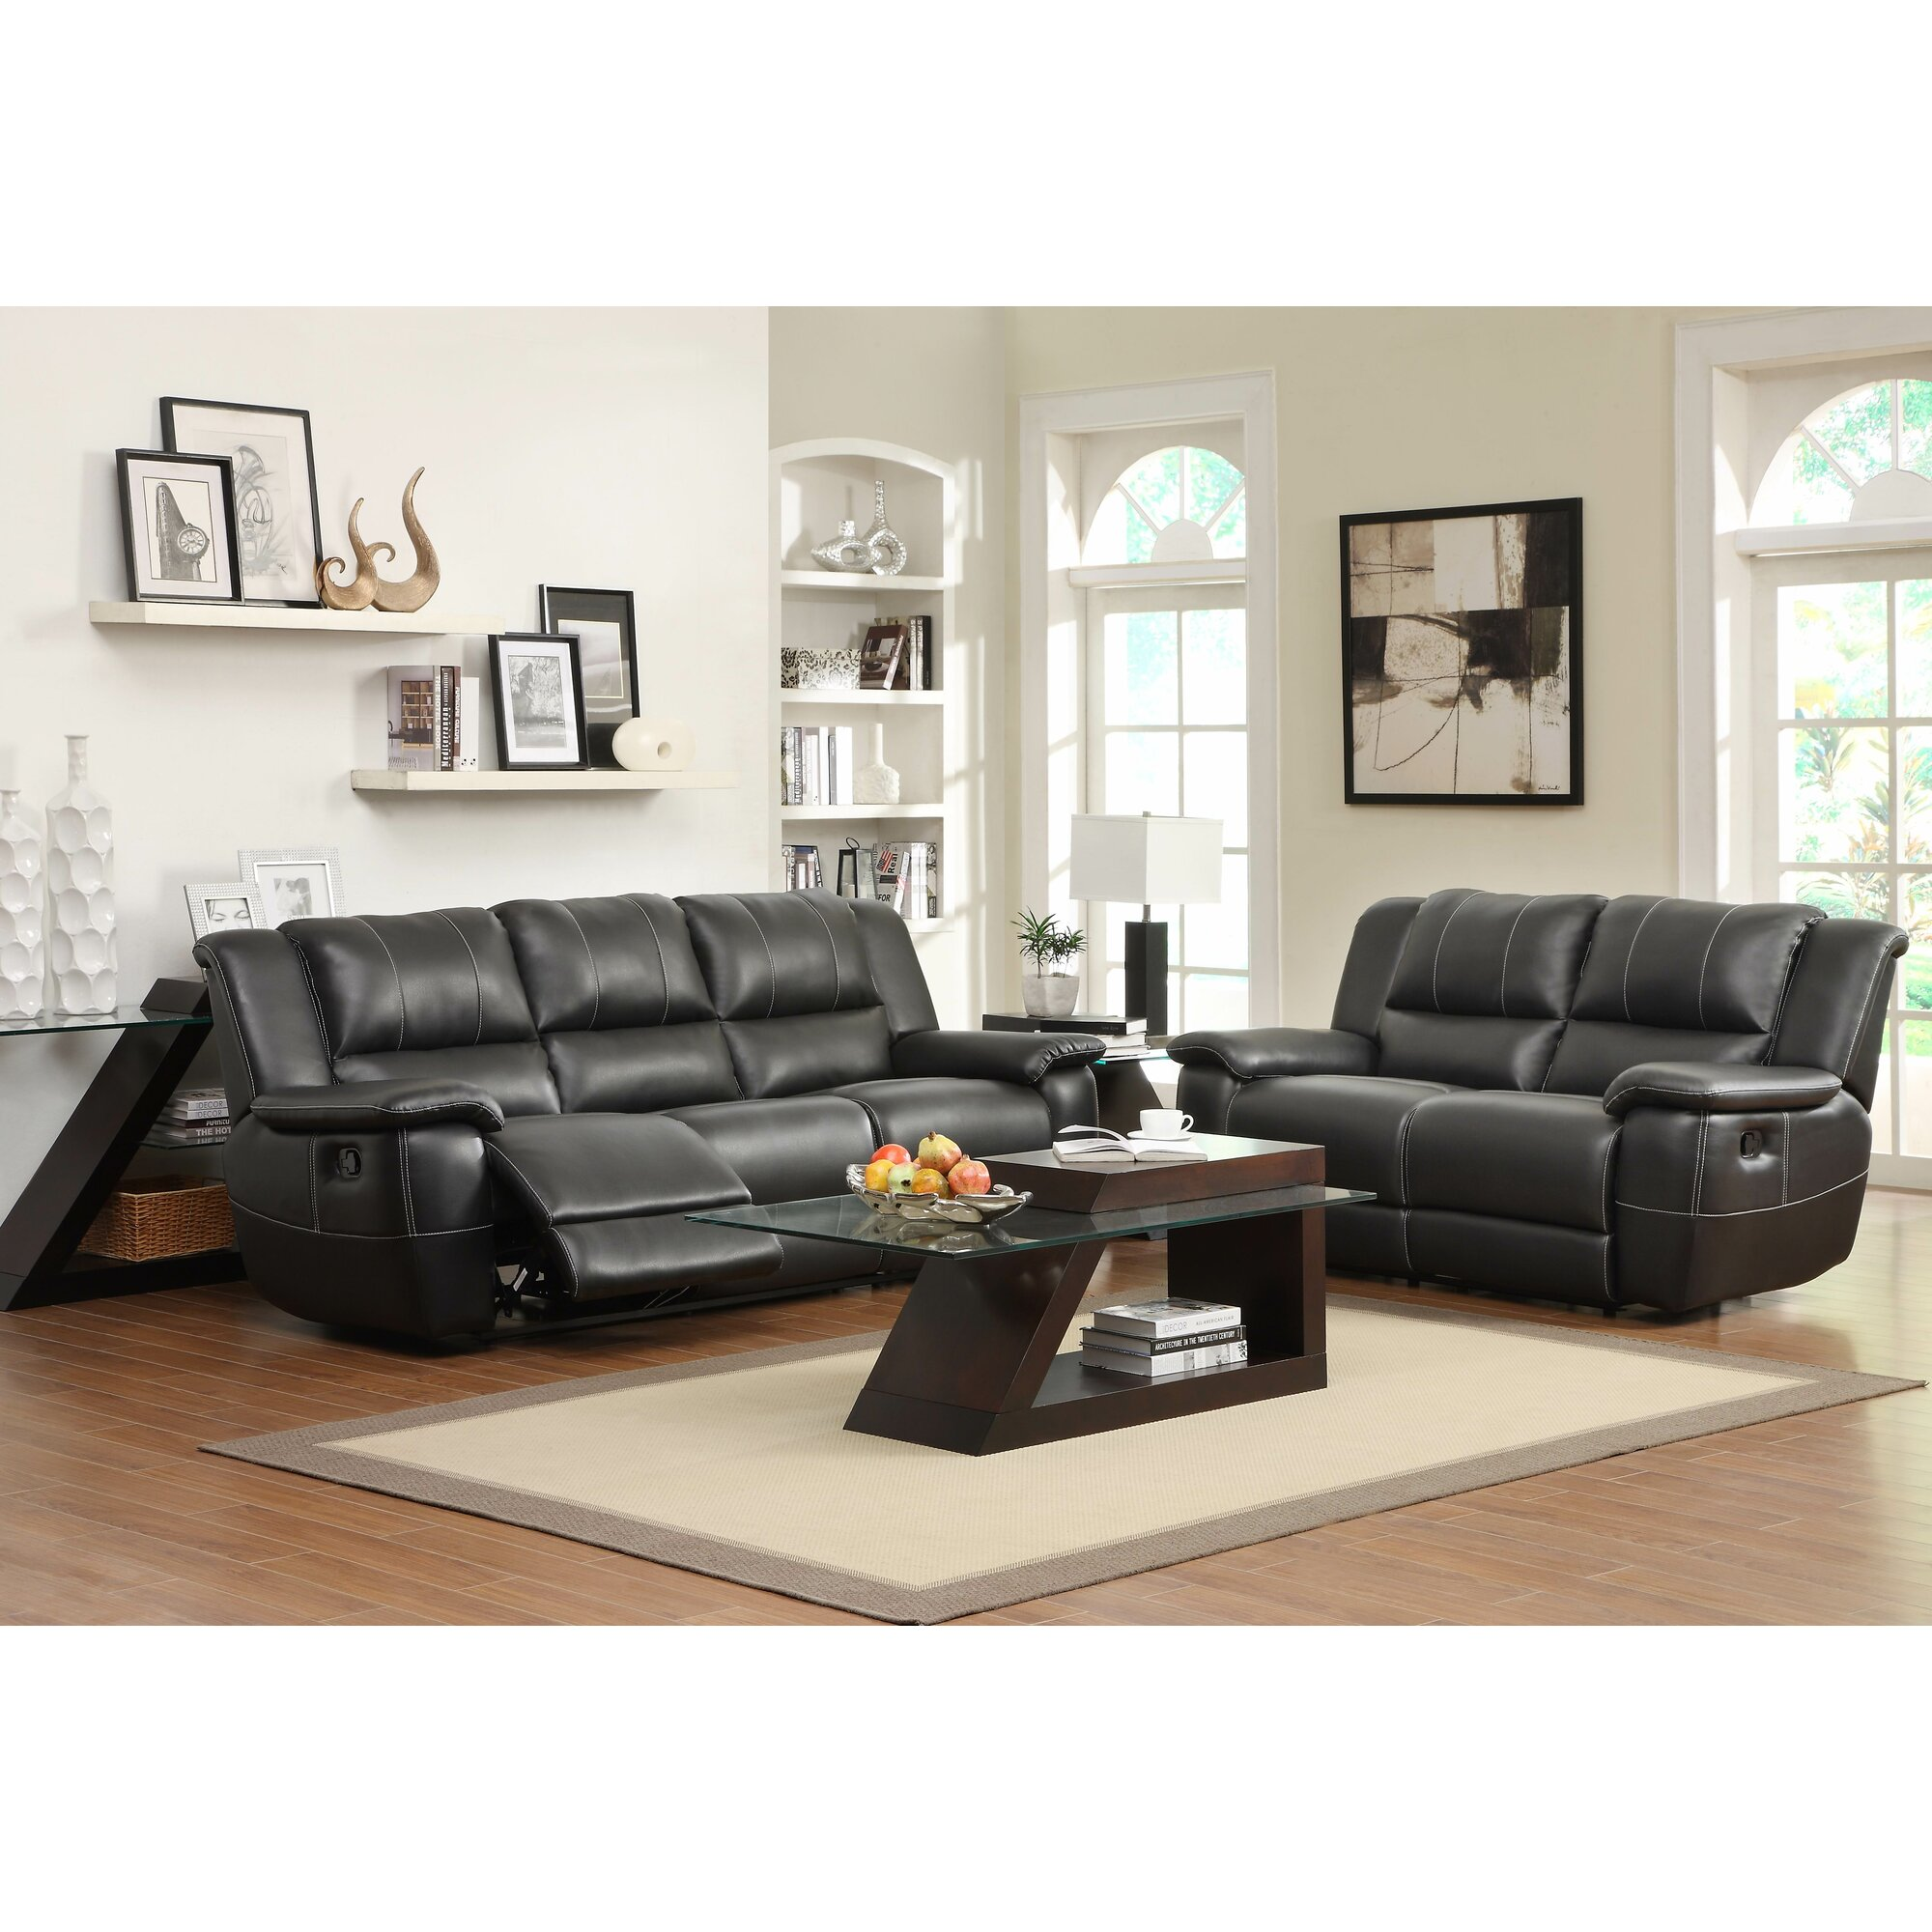 Woodhaven Hill Cantrell Living Room Collection Reviews Wayfair .